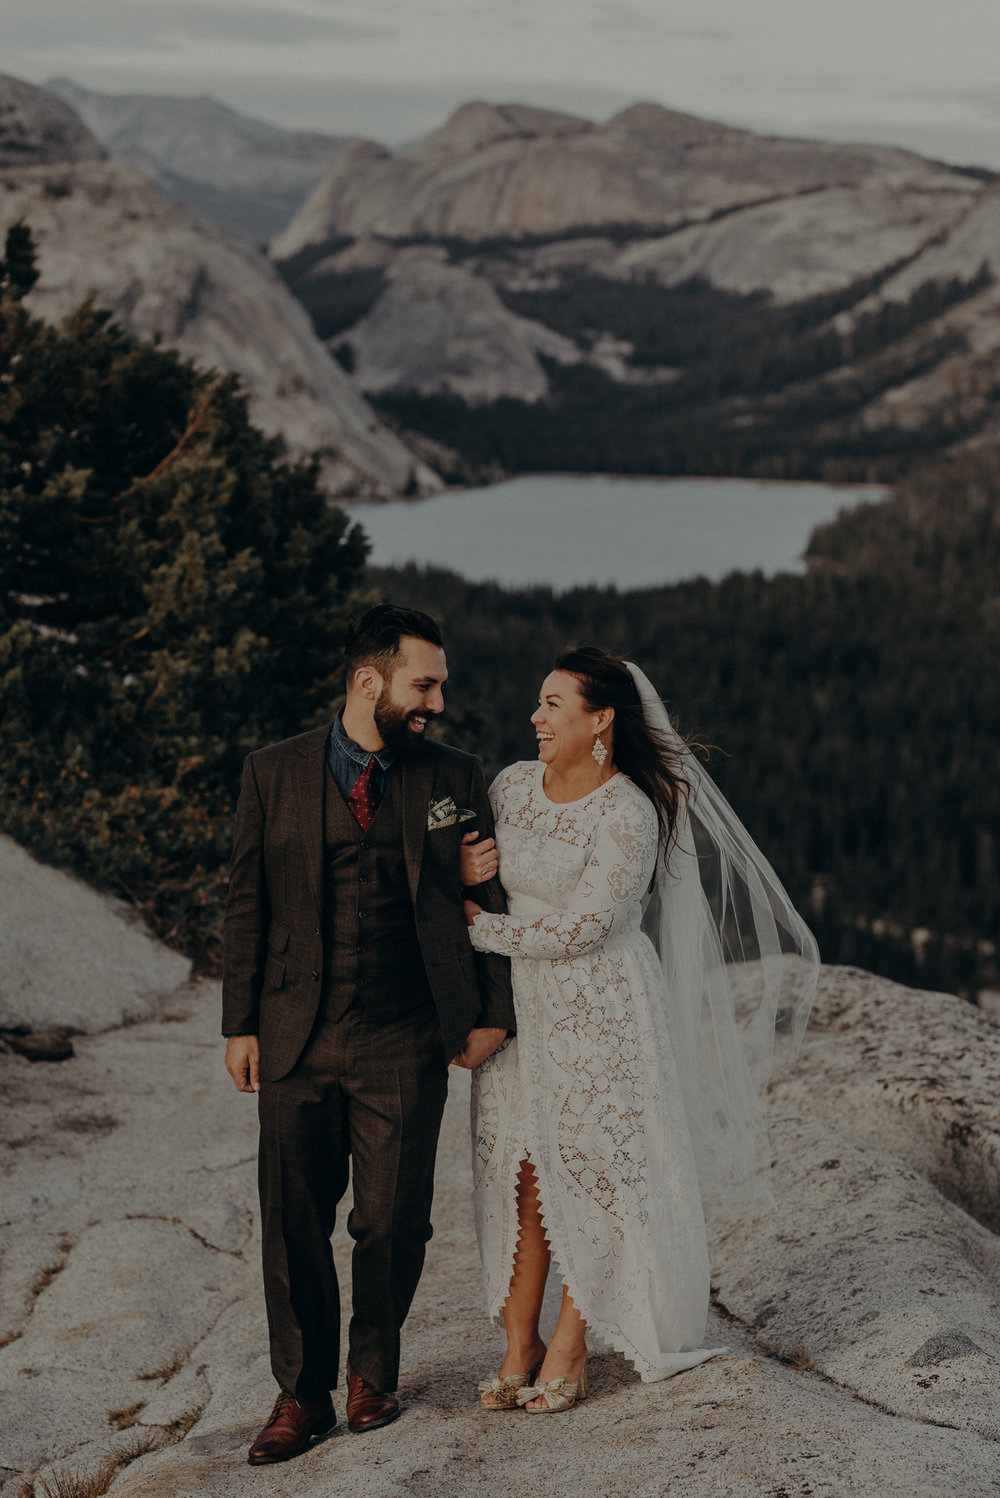 Yosemite Elopement Photographer - Evergreen Lodge Wedding Photographer - IsaiahAndTaylor.com-035.jpg